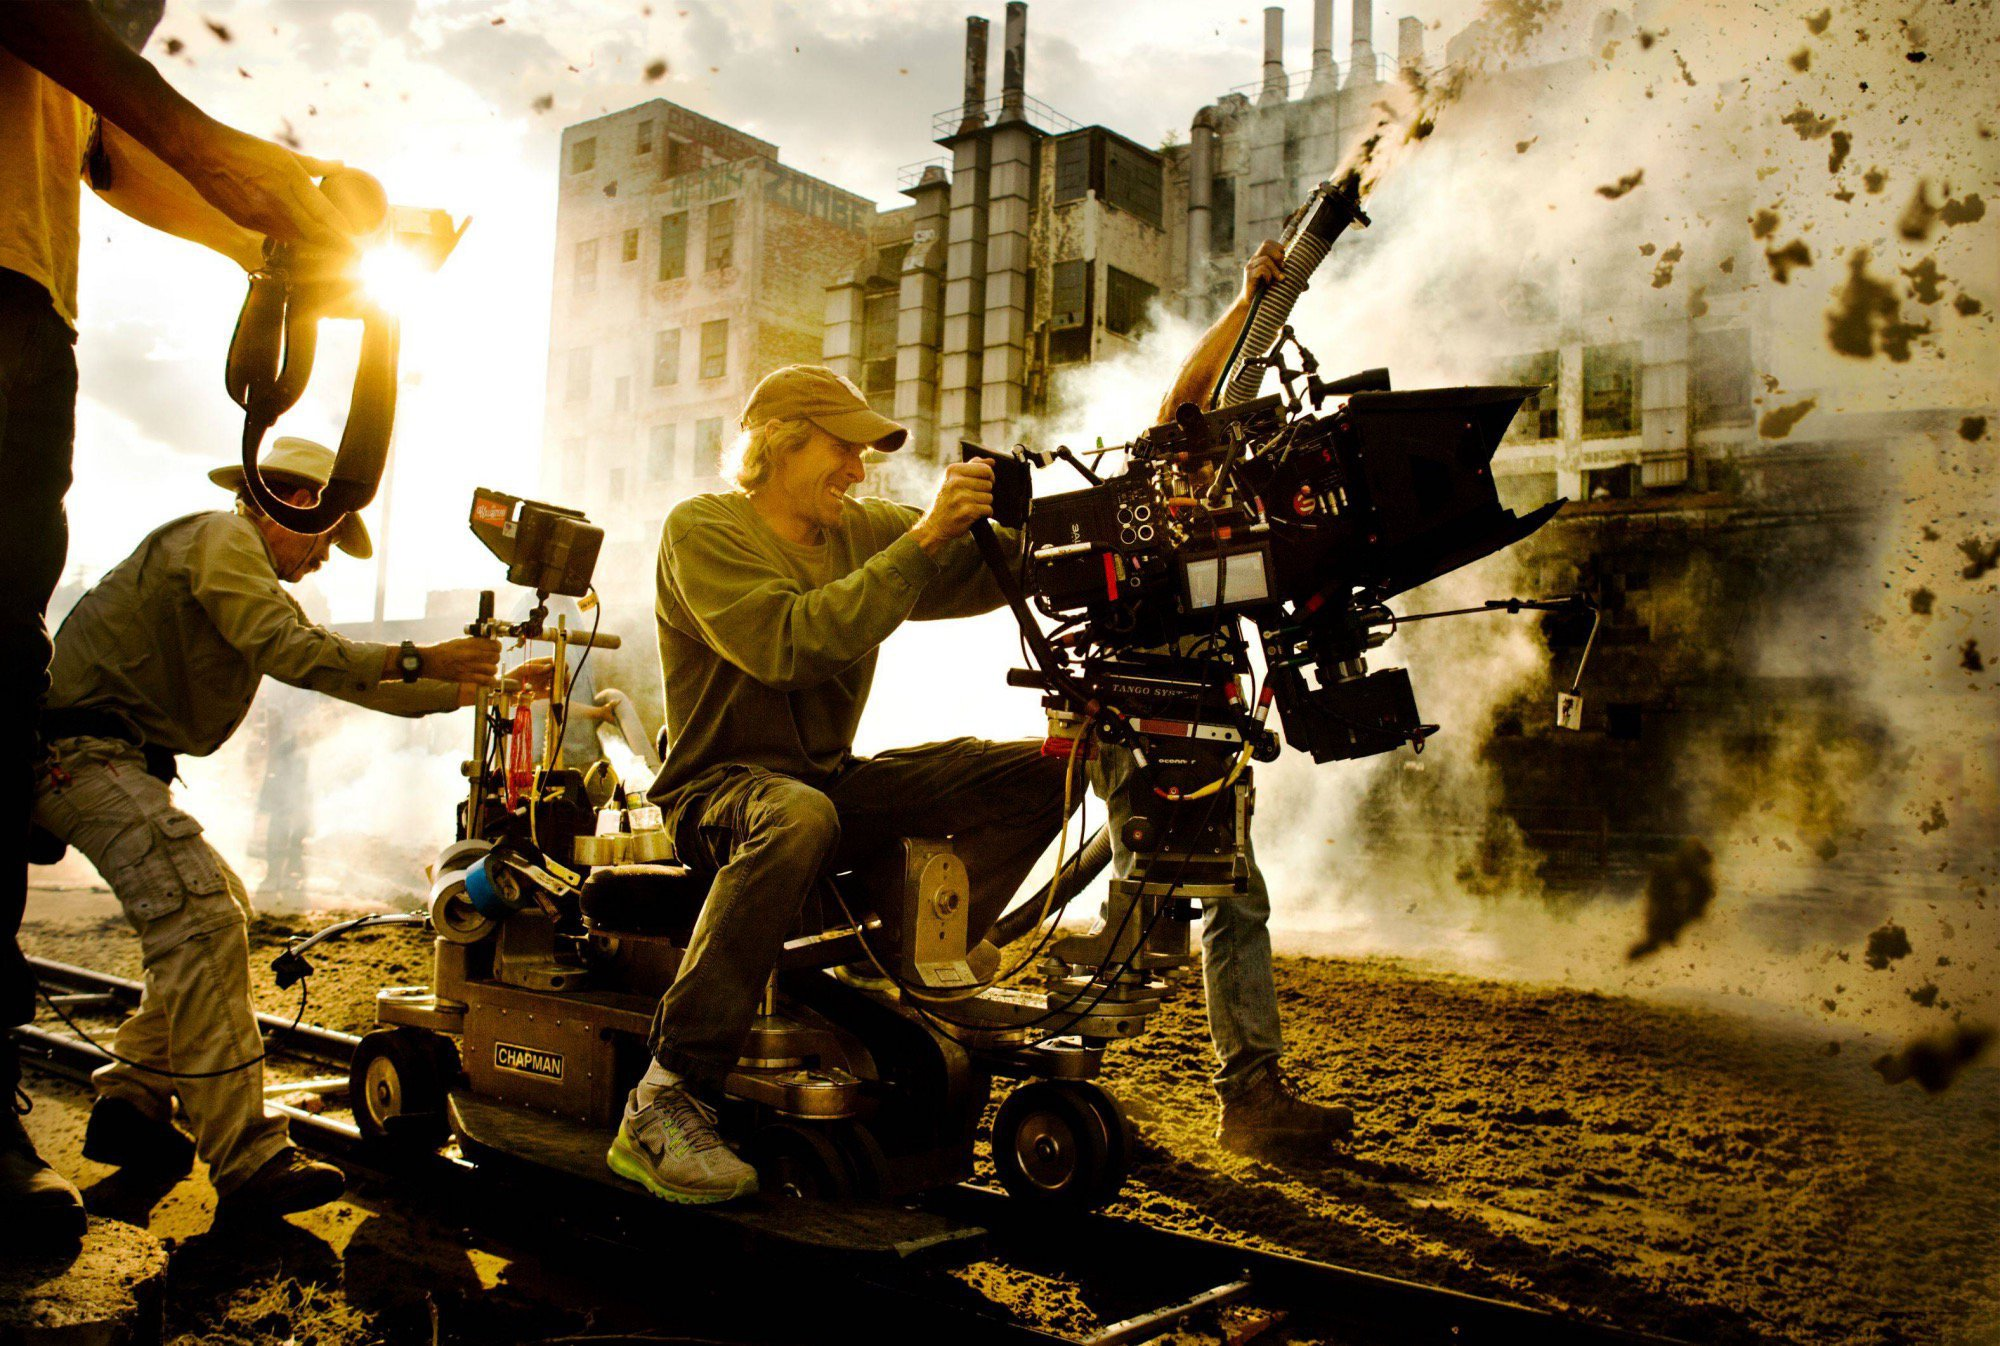 transformers-michael-bay-departs